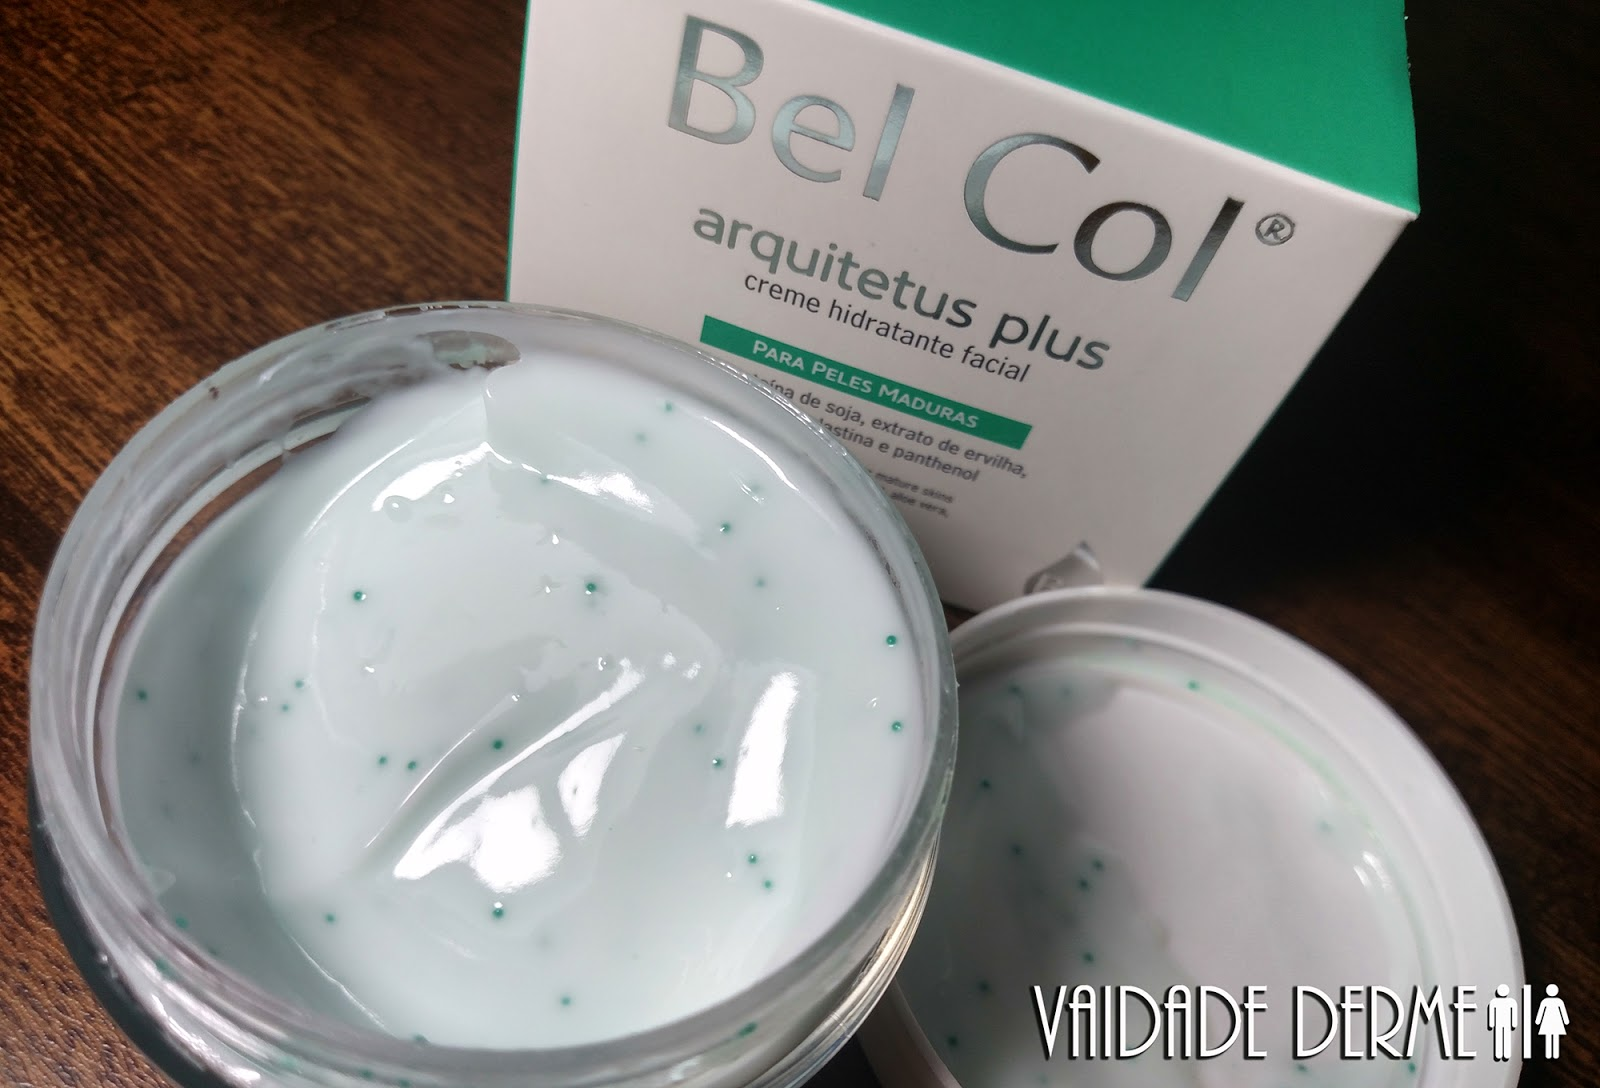 Bel Col Arquitetus Plus e Body